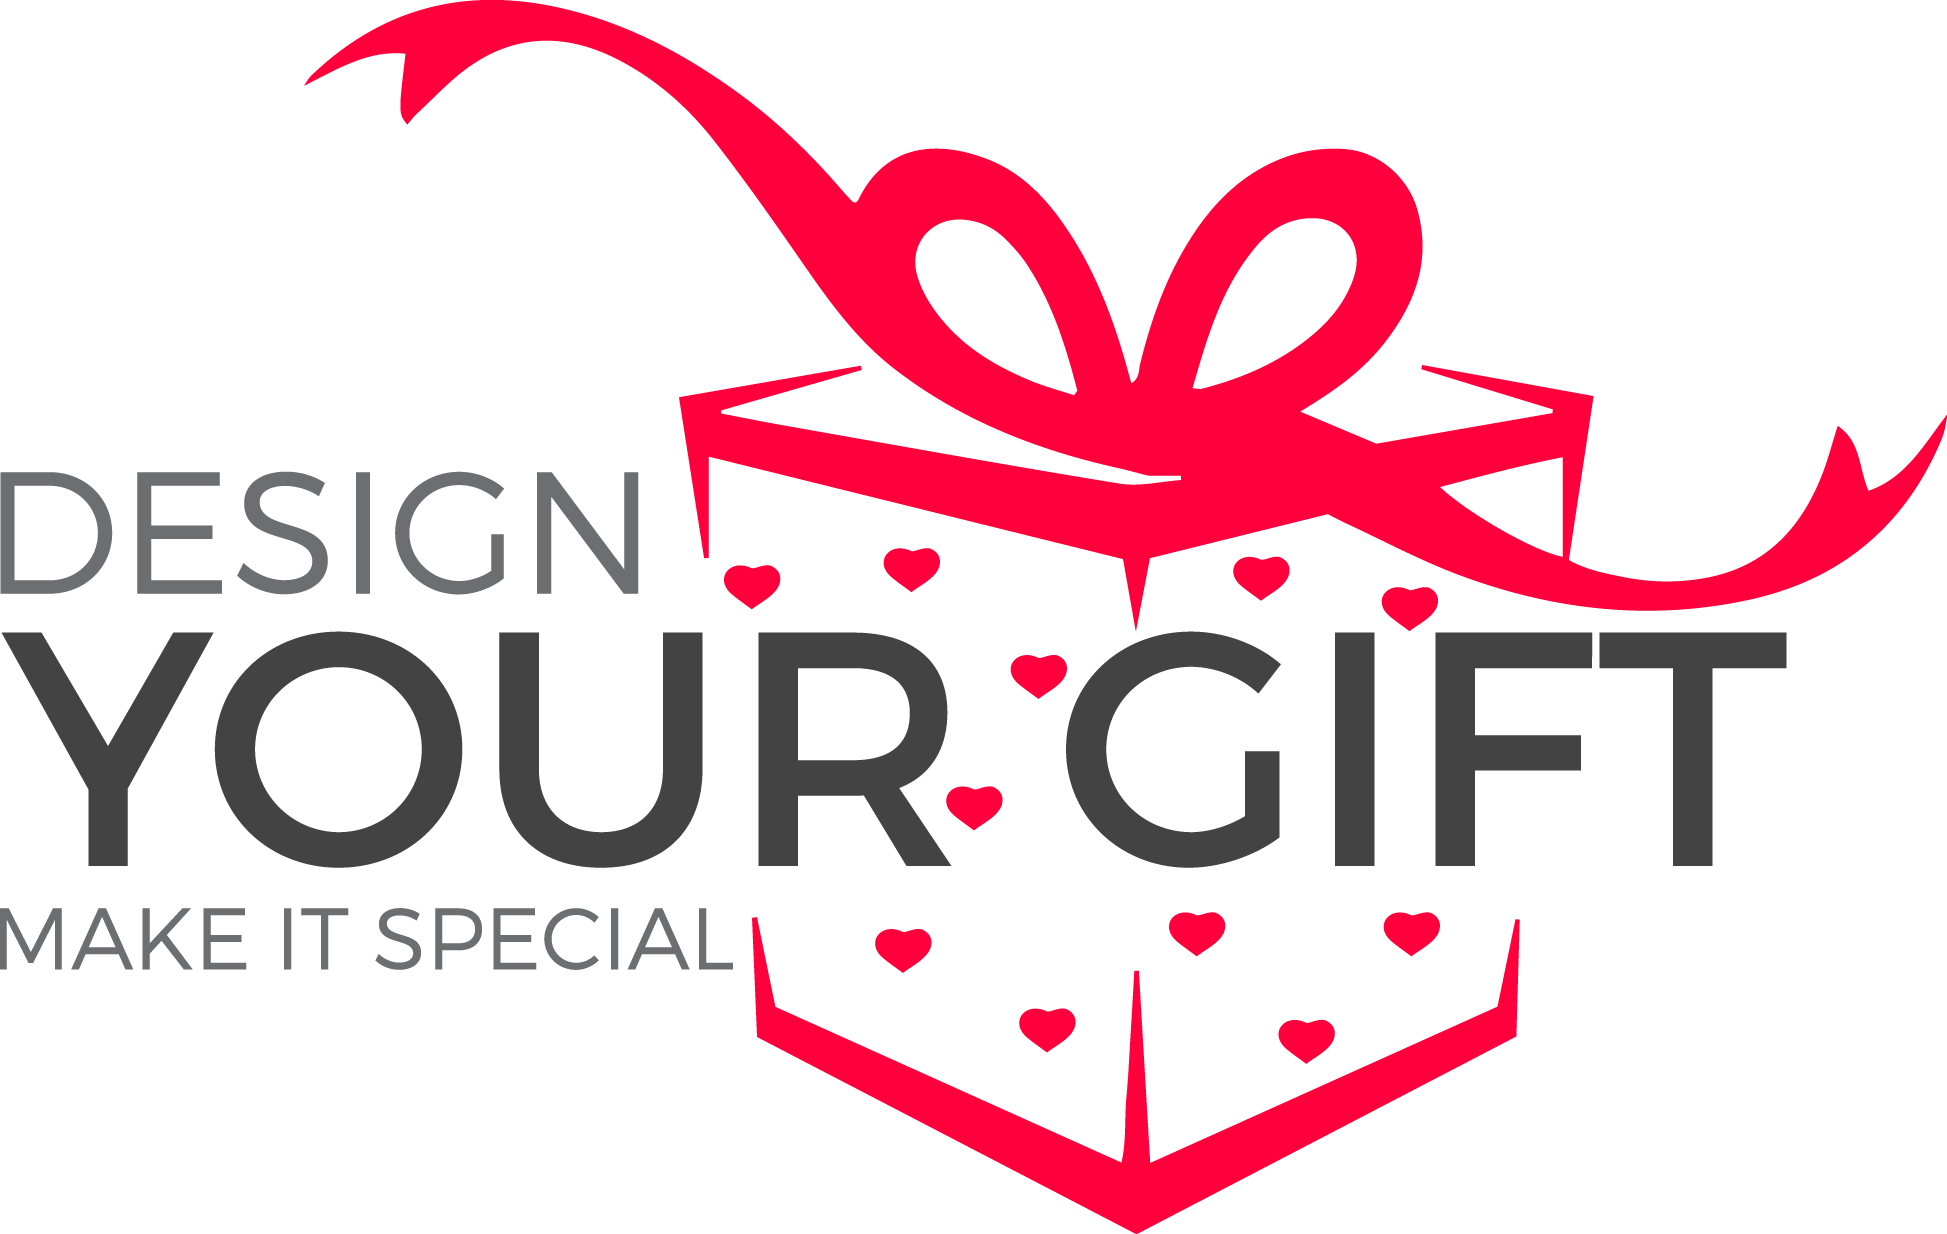 design your gift uk logo